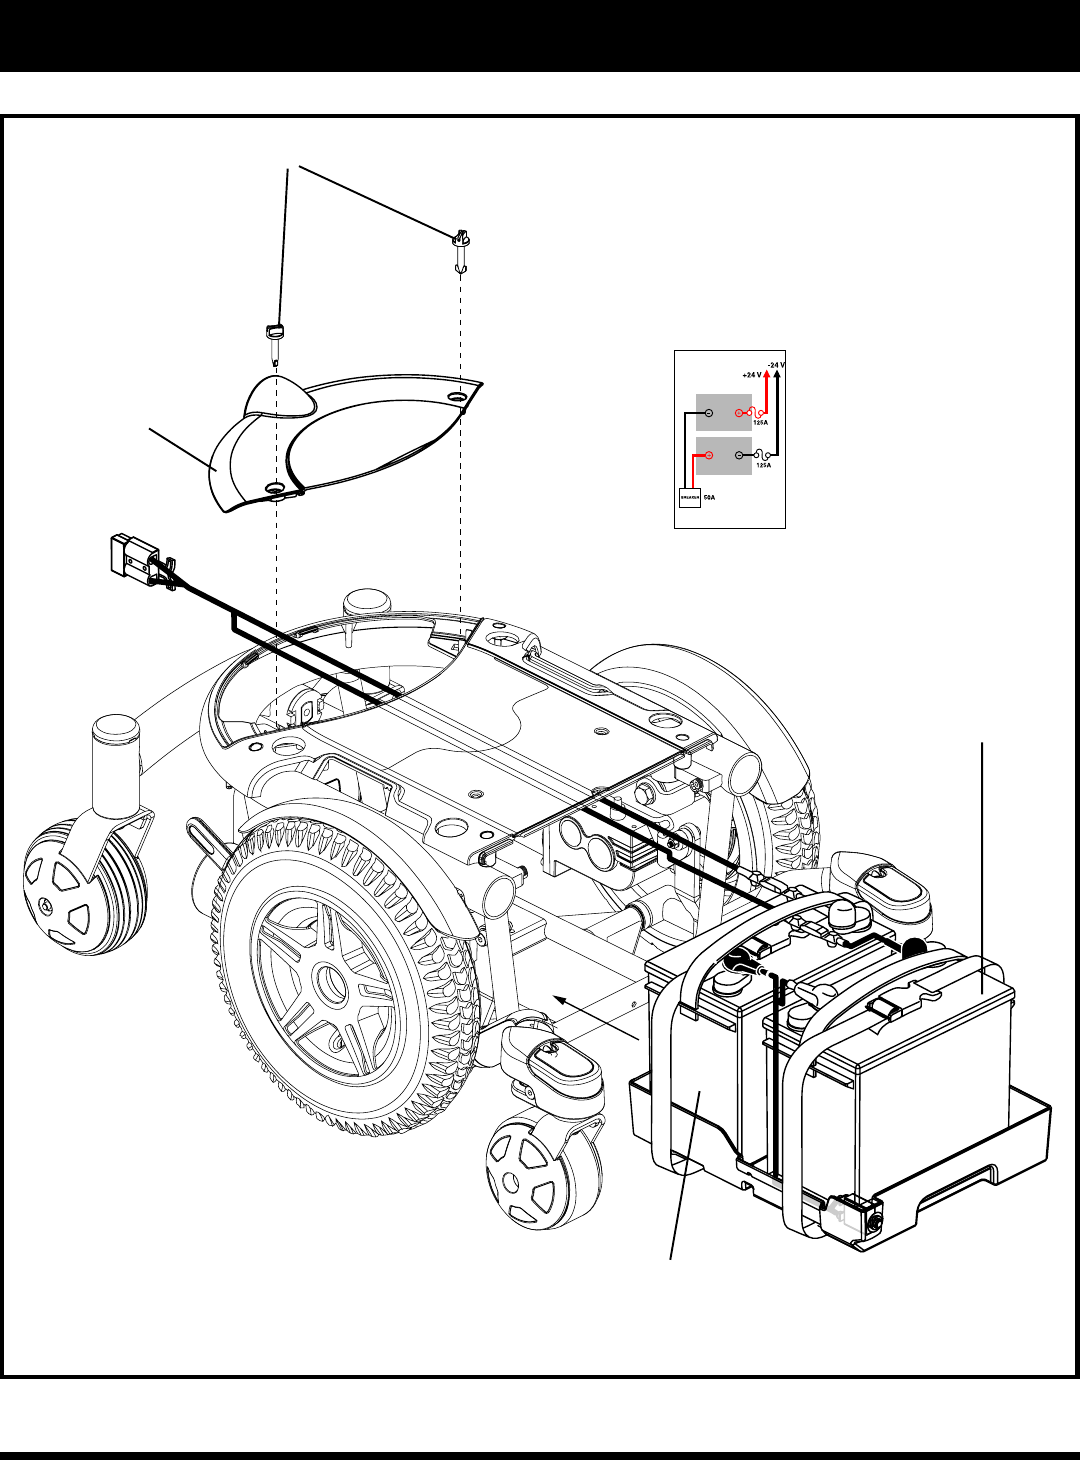 1b922ffe 36be 4352 9997 ae54f648c0b5 bg27 page 39 of pride mobility mobility aid jazzy 600 xl user guide jazzy power chair wiring diagram at eliteediting.co